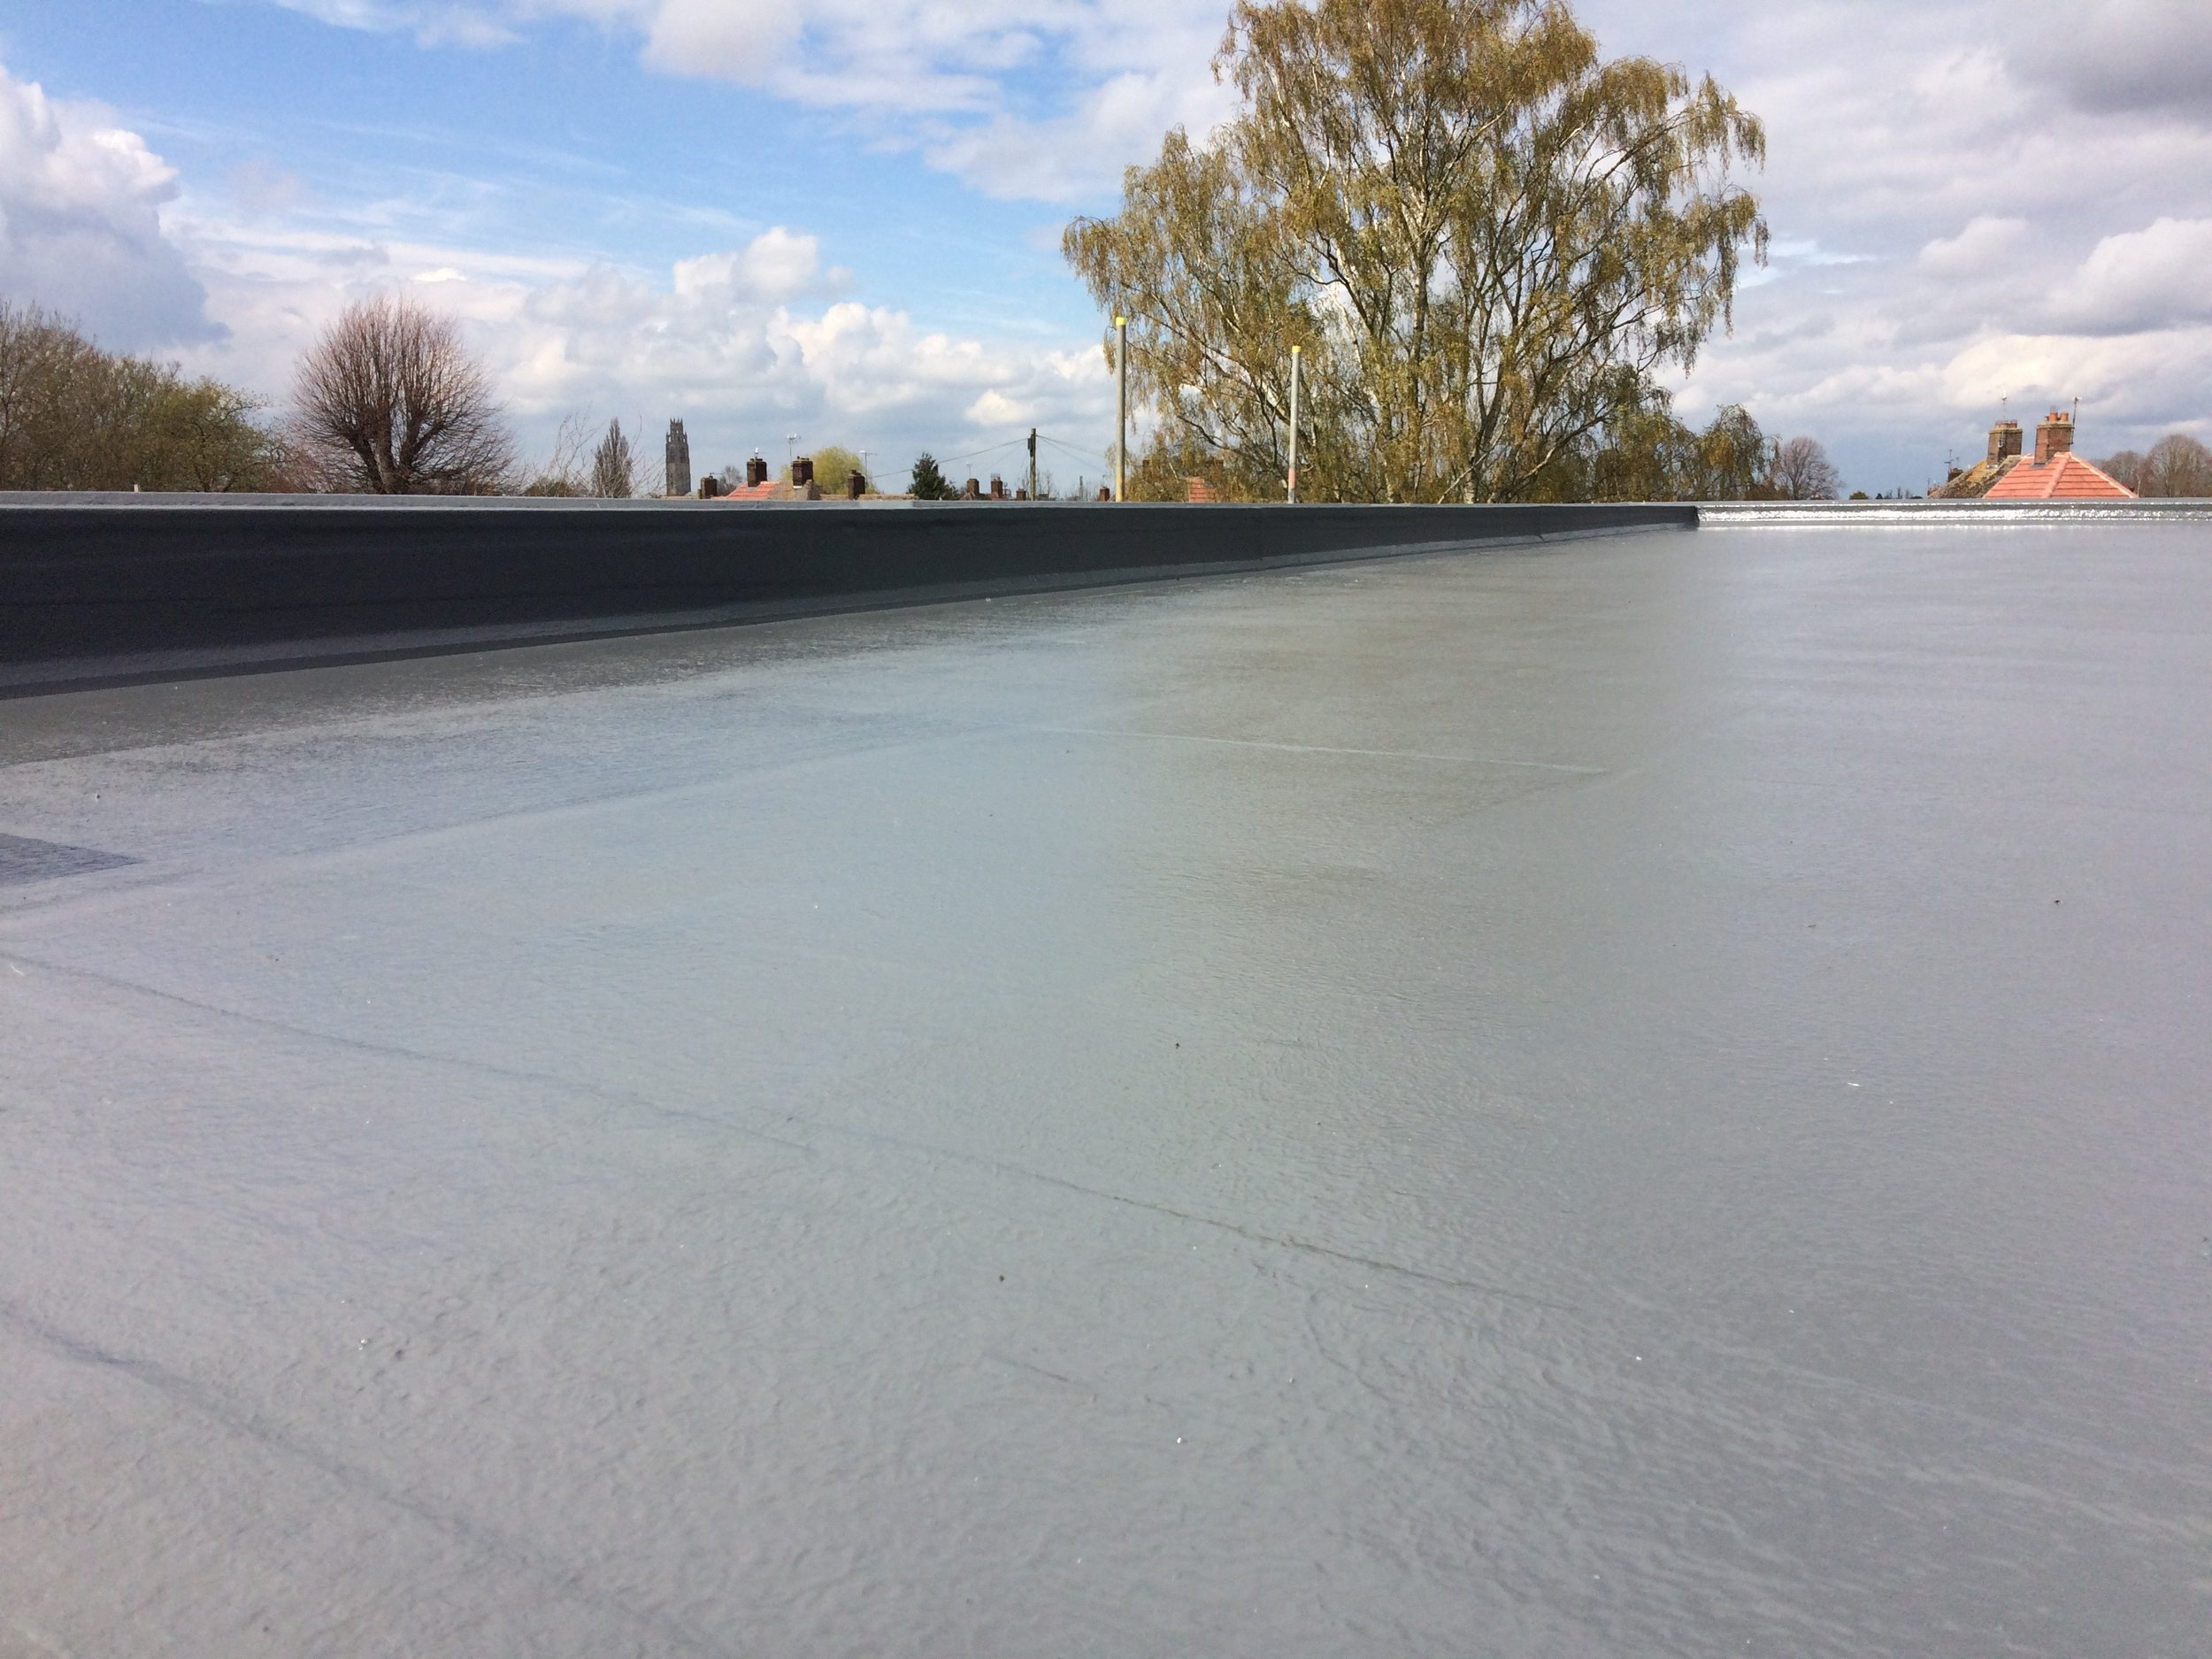 - Fibreworx Roofing, the Fibreglass roofing specialists.